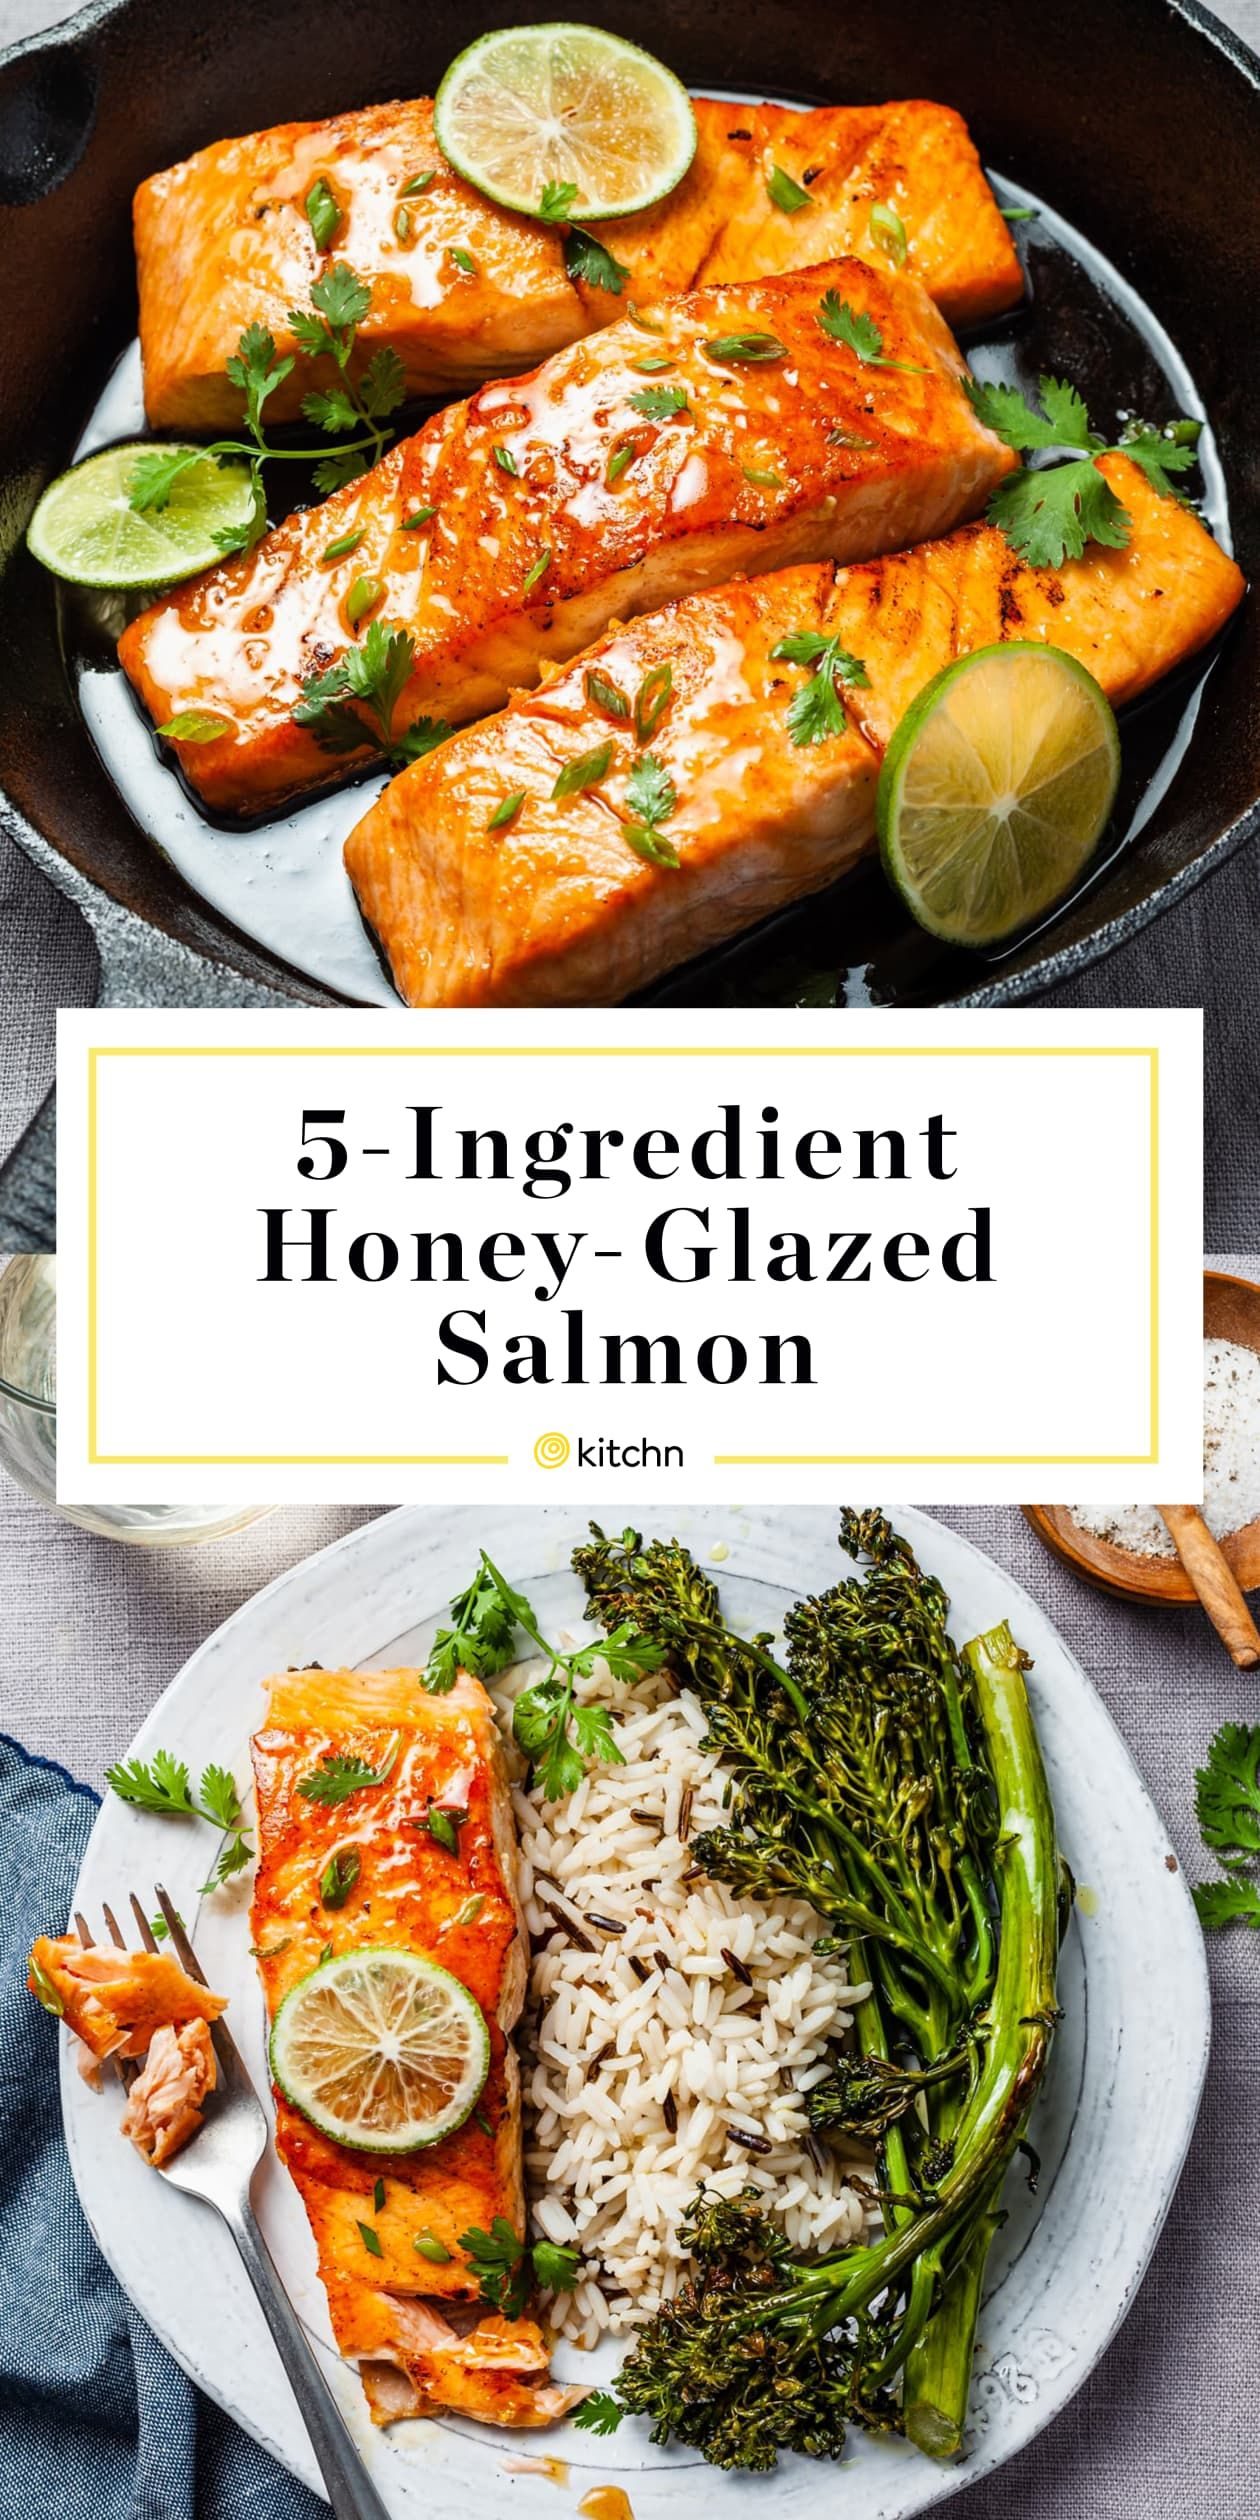 Fast, Flavorful Honey-Glazed Salmon Takes 15 Minutes and Just 5 Ingredients